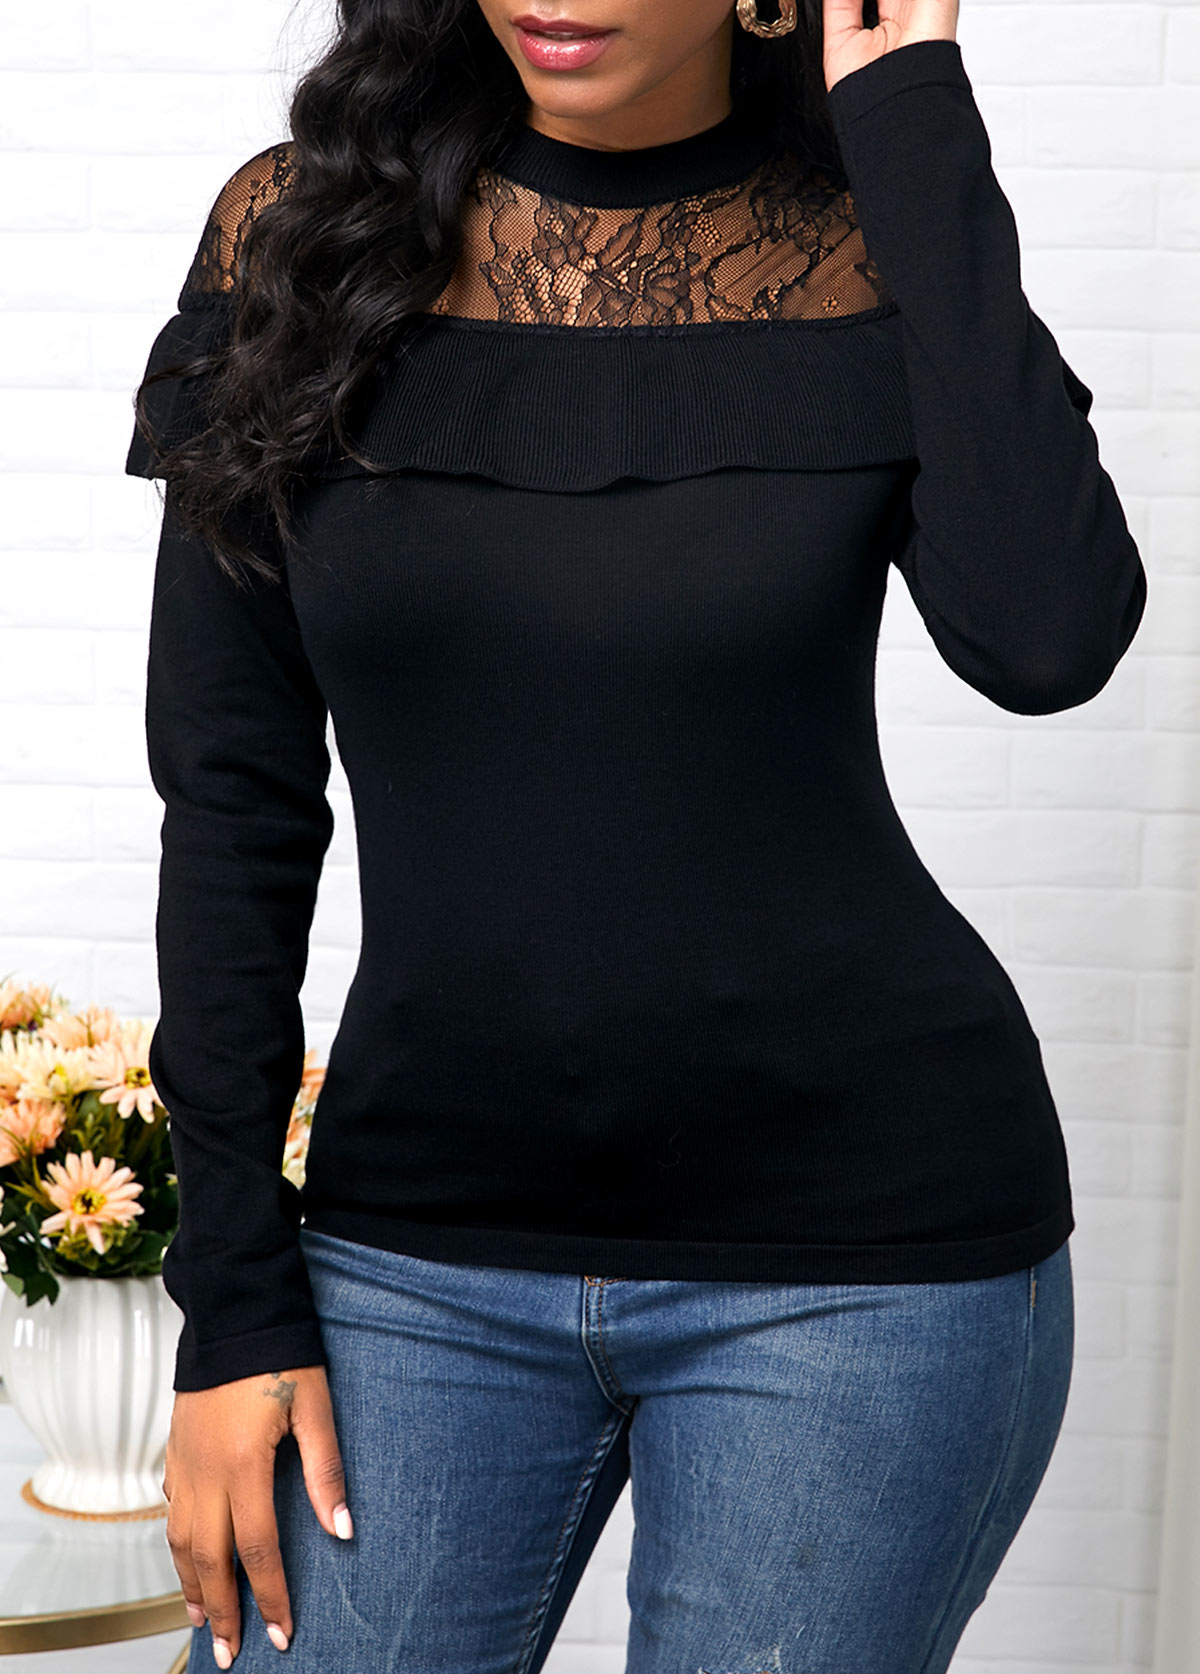 Lace Patchwork Ruffle Decorated Black Sweater